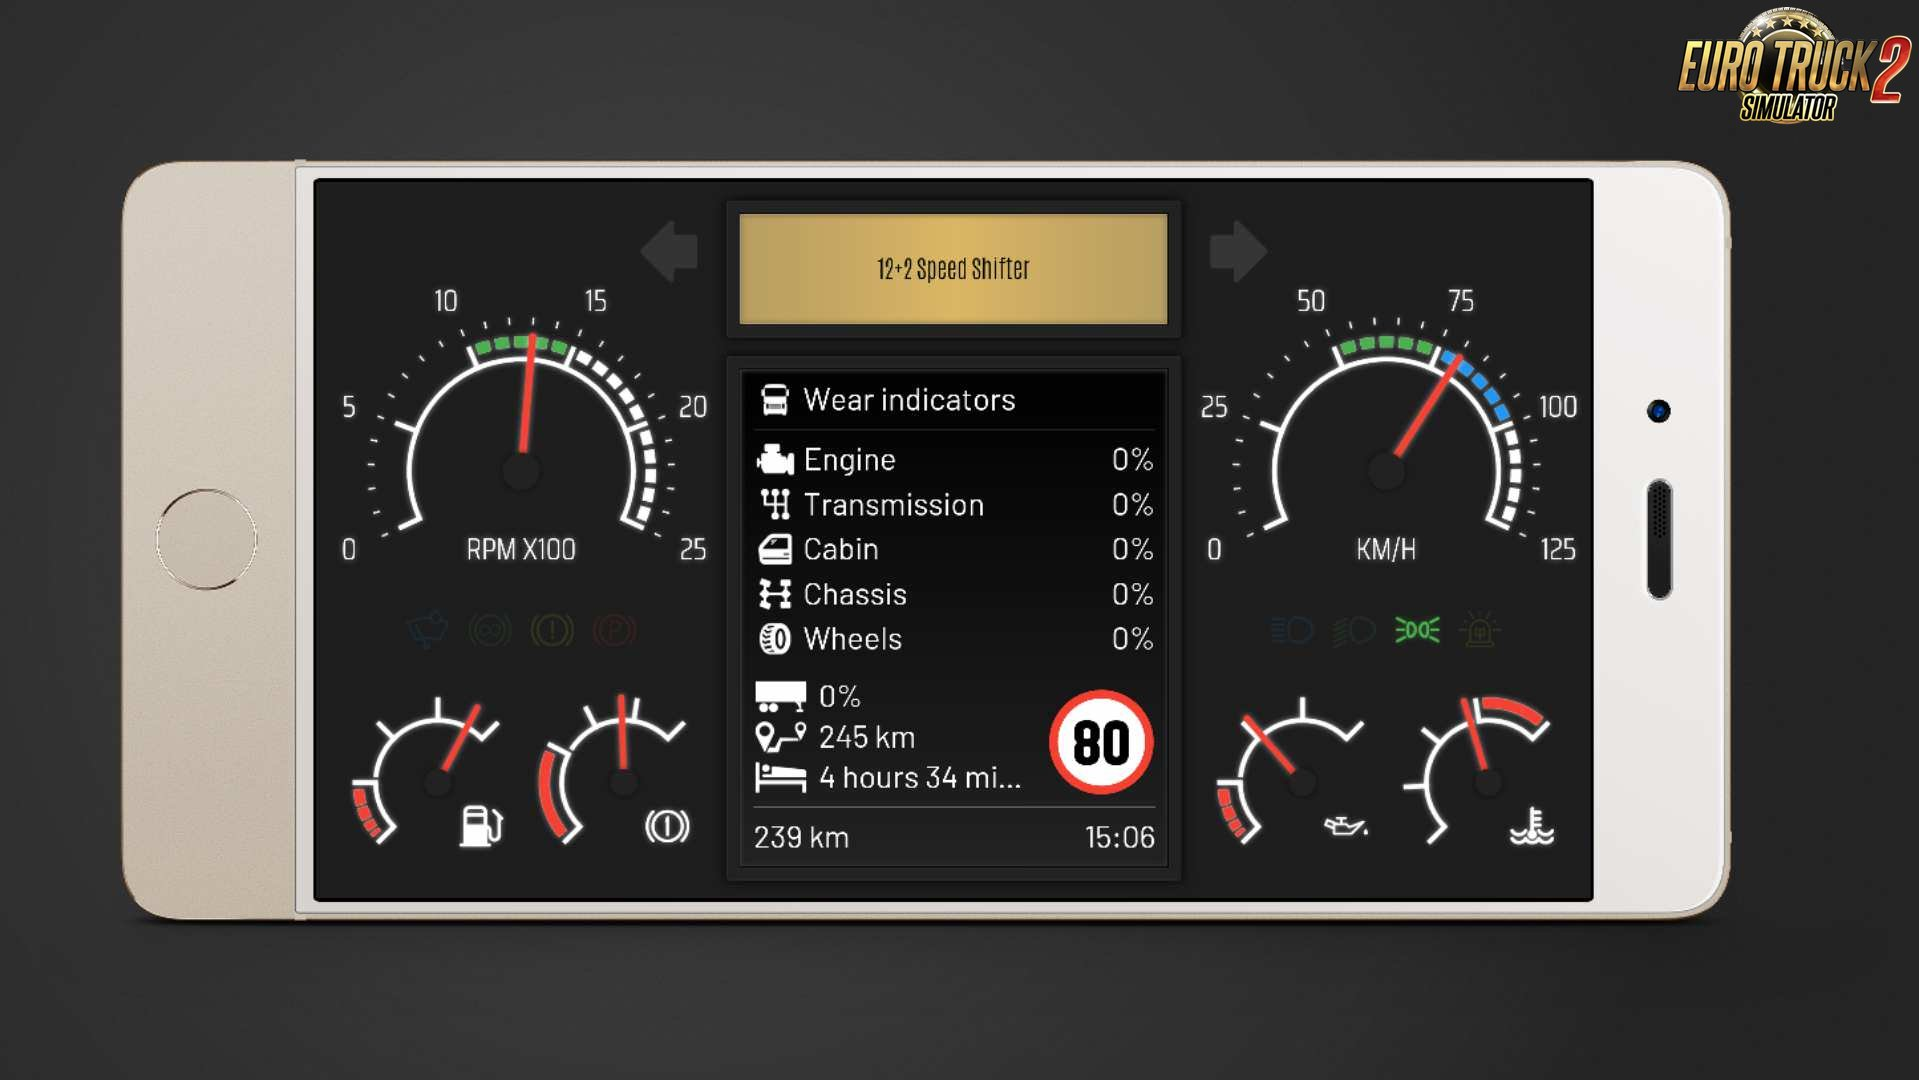 New Dashboard Skin (Telemetry Web Server) v1.3 for Ets2 and Ats